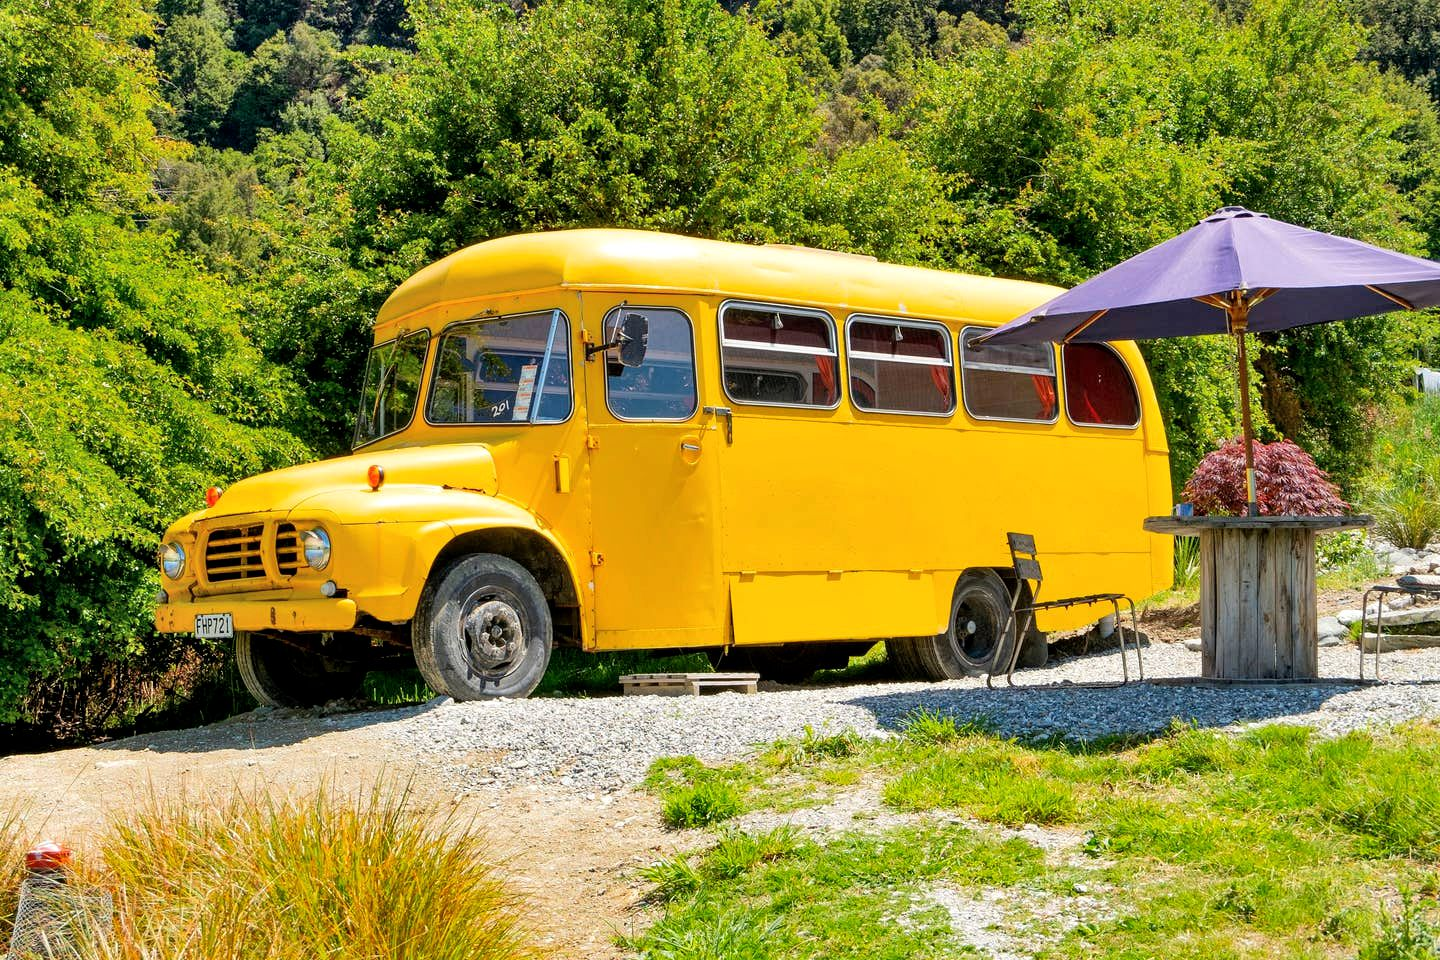 This yellow bus is perfect for guests looking to go glamping near Queenstown, South Island